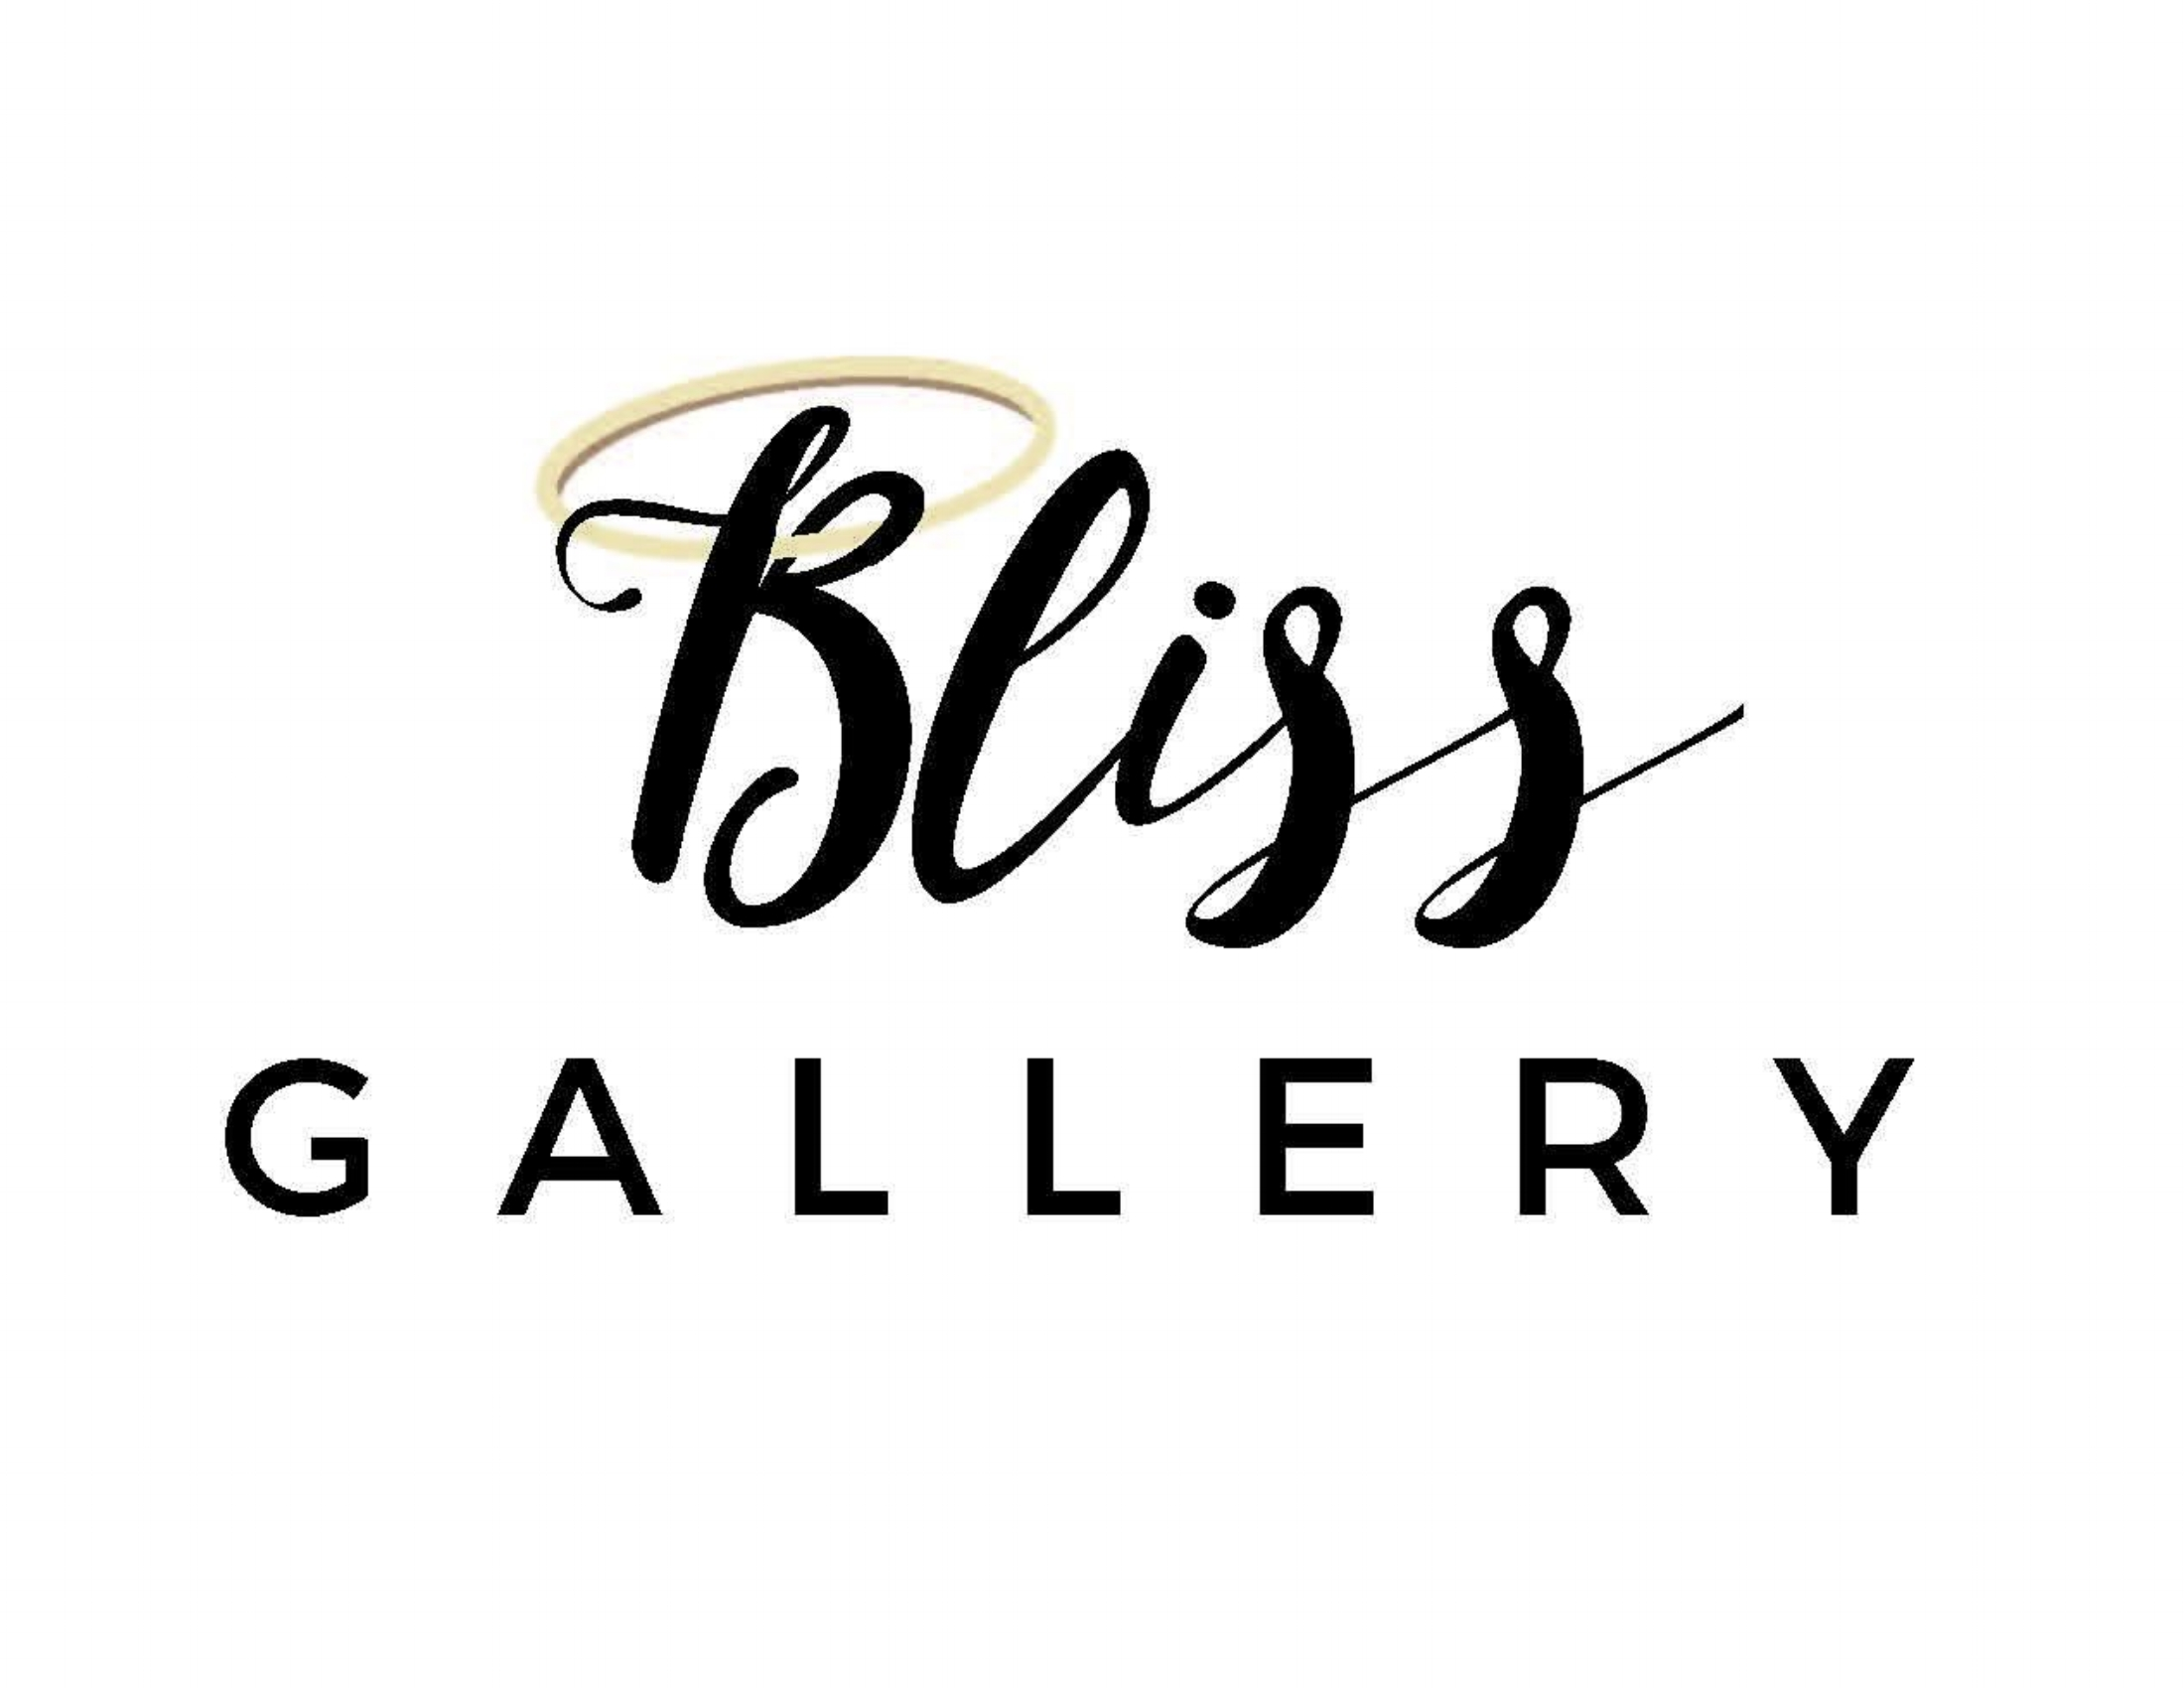 Bliss Gallery